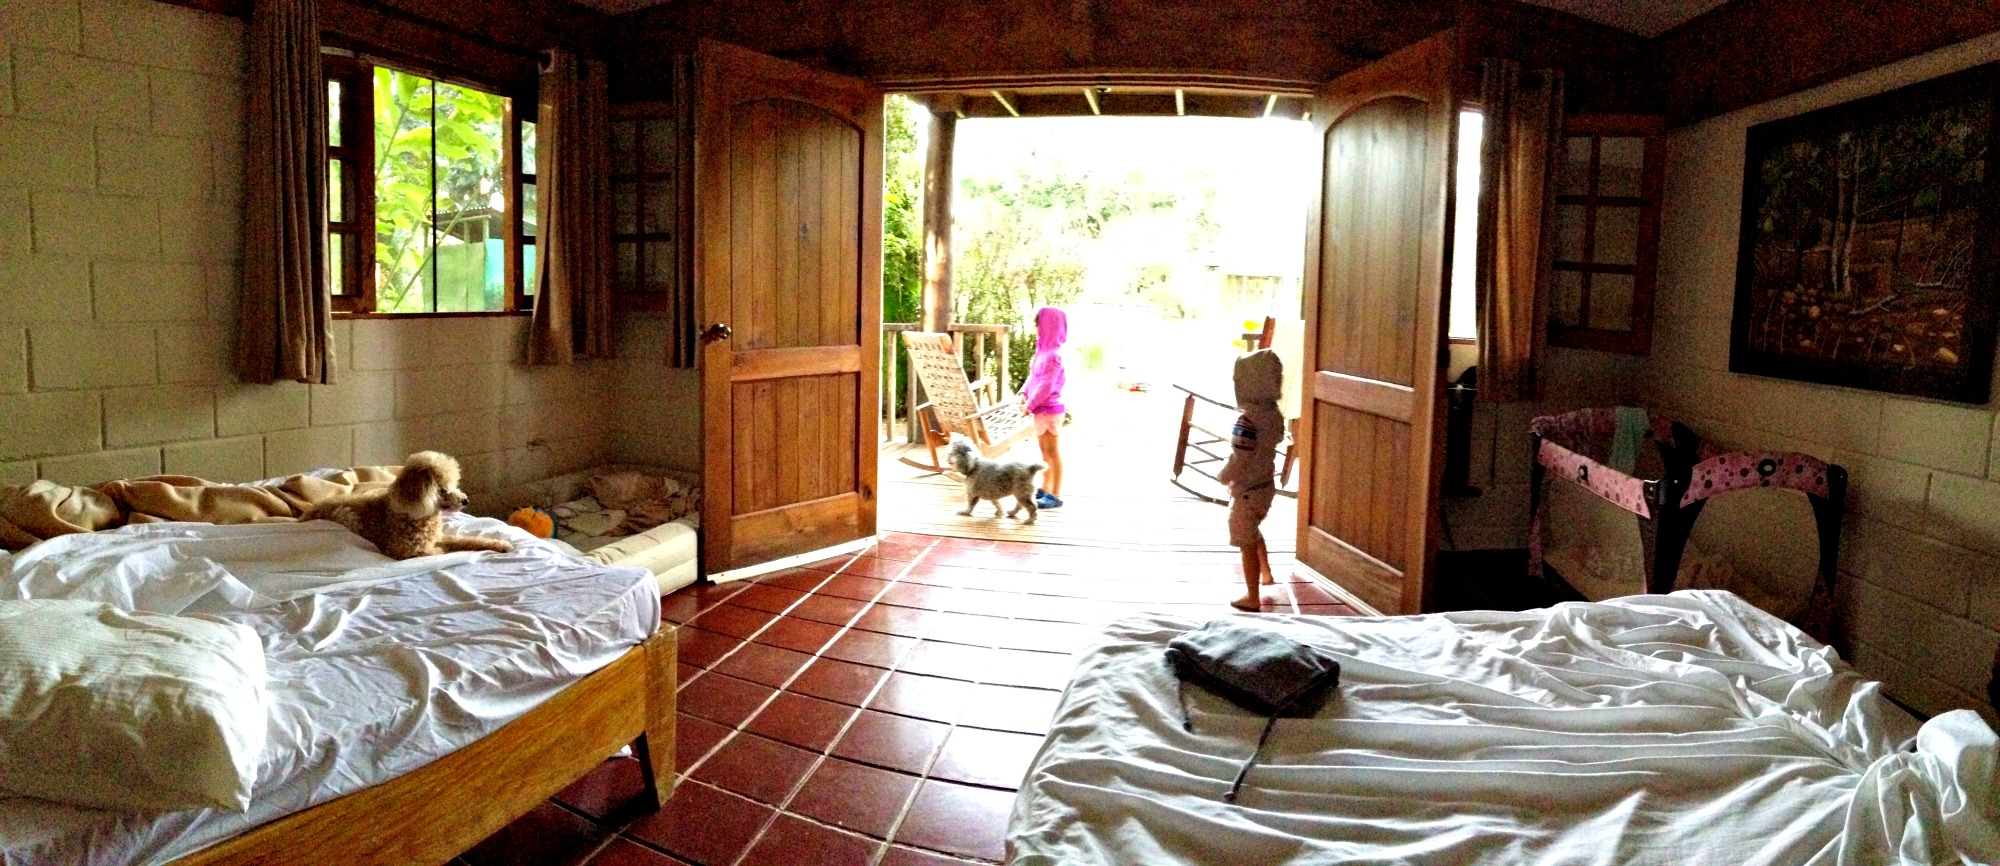 Our room at Rancho Baiguate